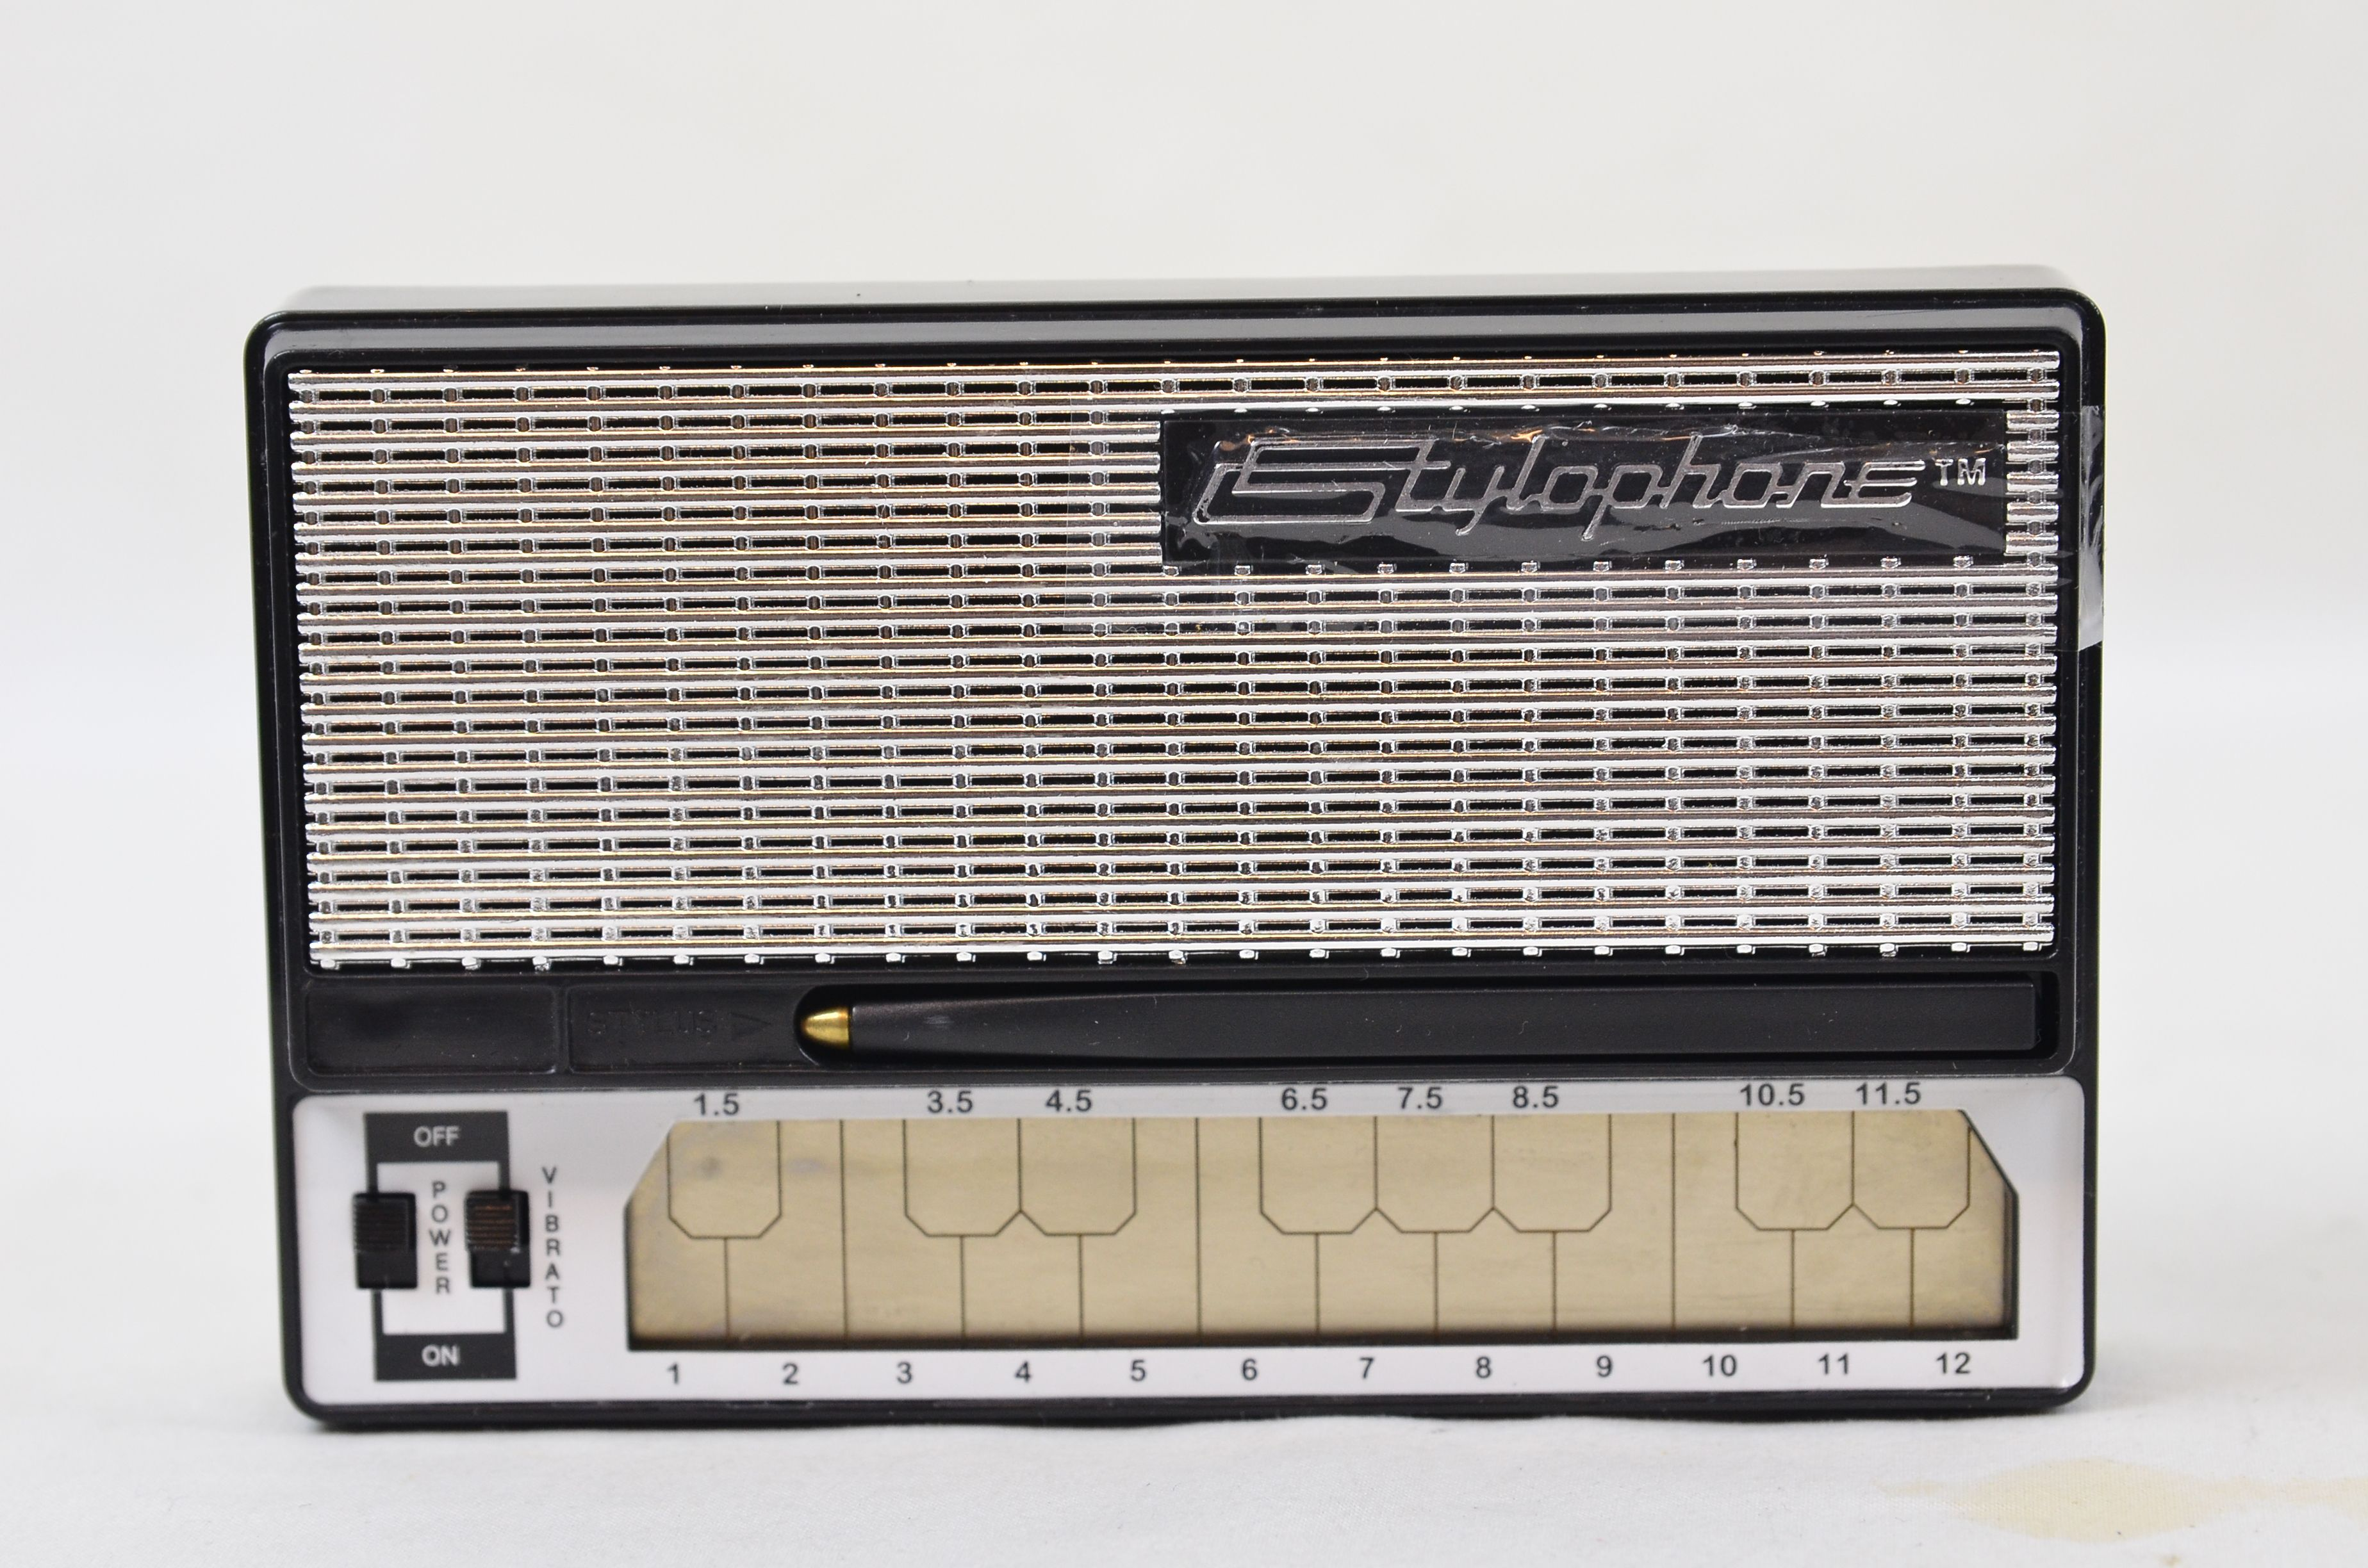 Dubreq Stylophone - The Original Pocket Synthesizer S-1 Pocket Electronic Organ Thumbnail 4